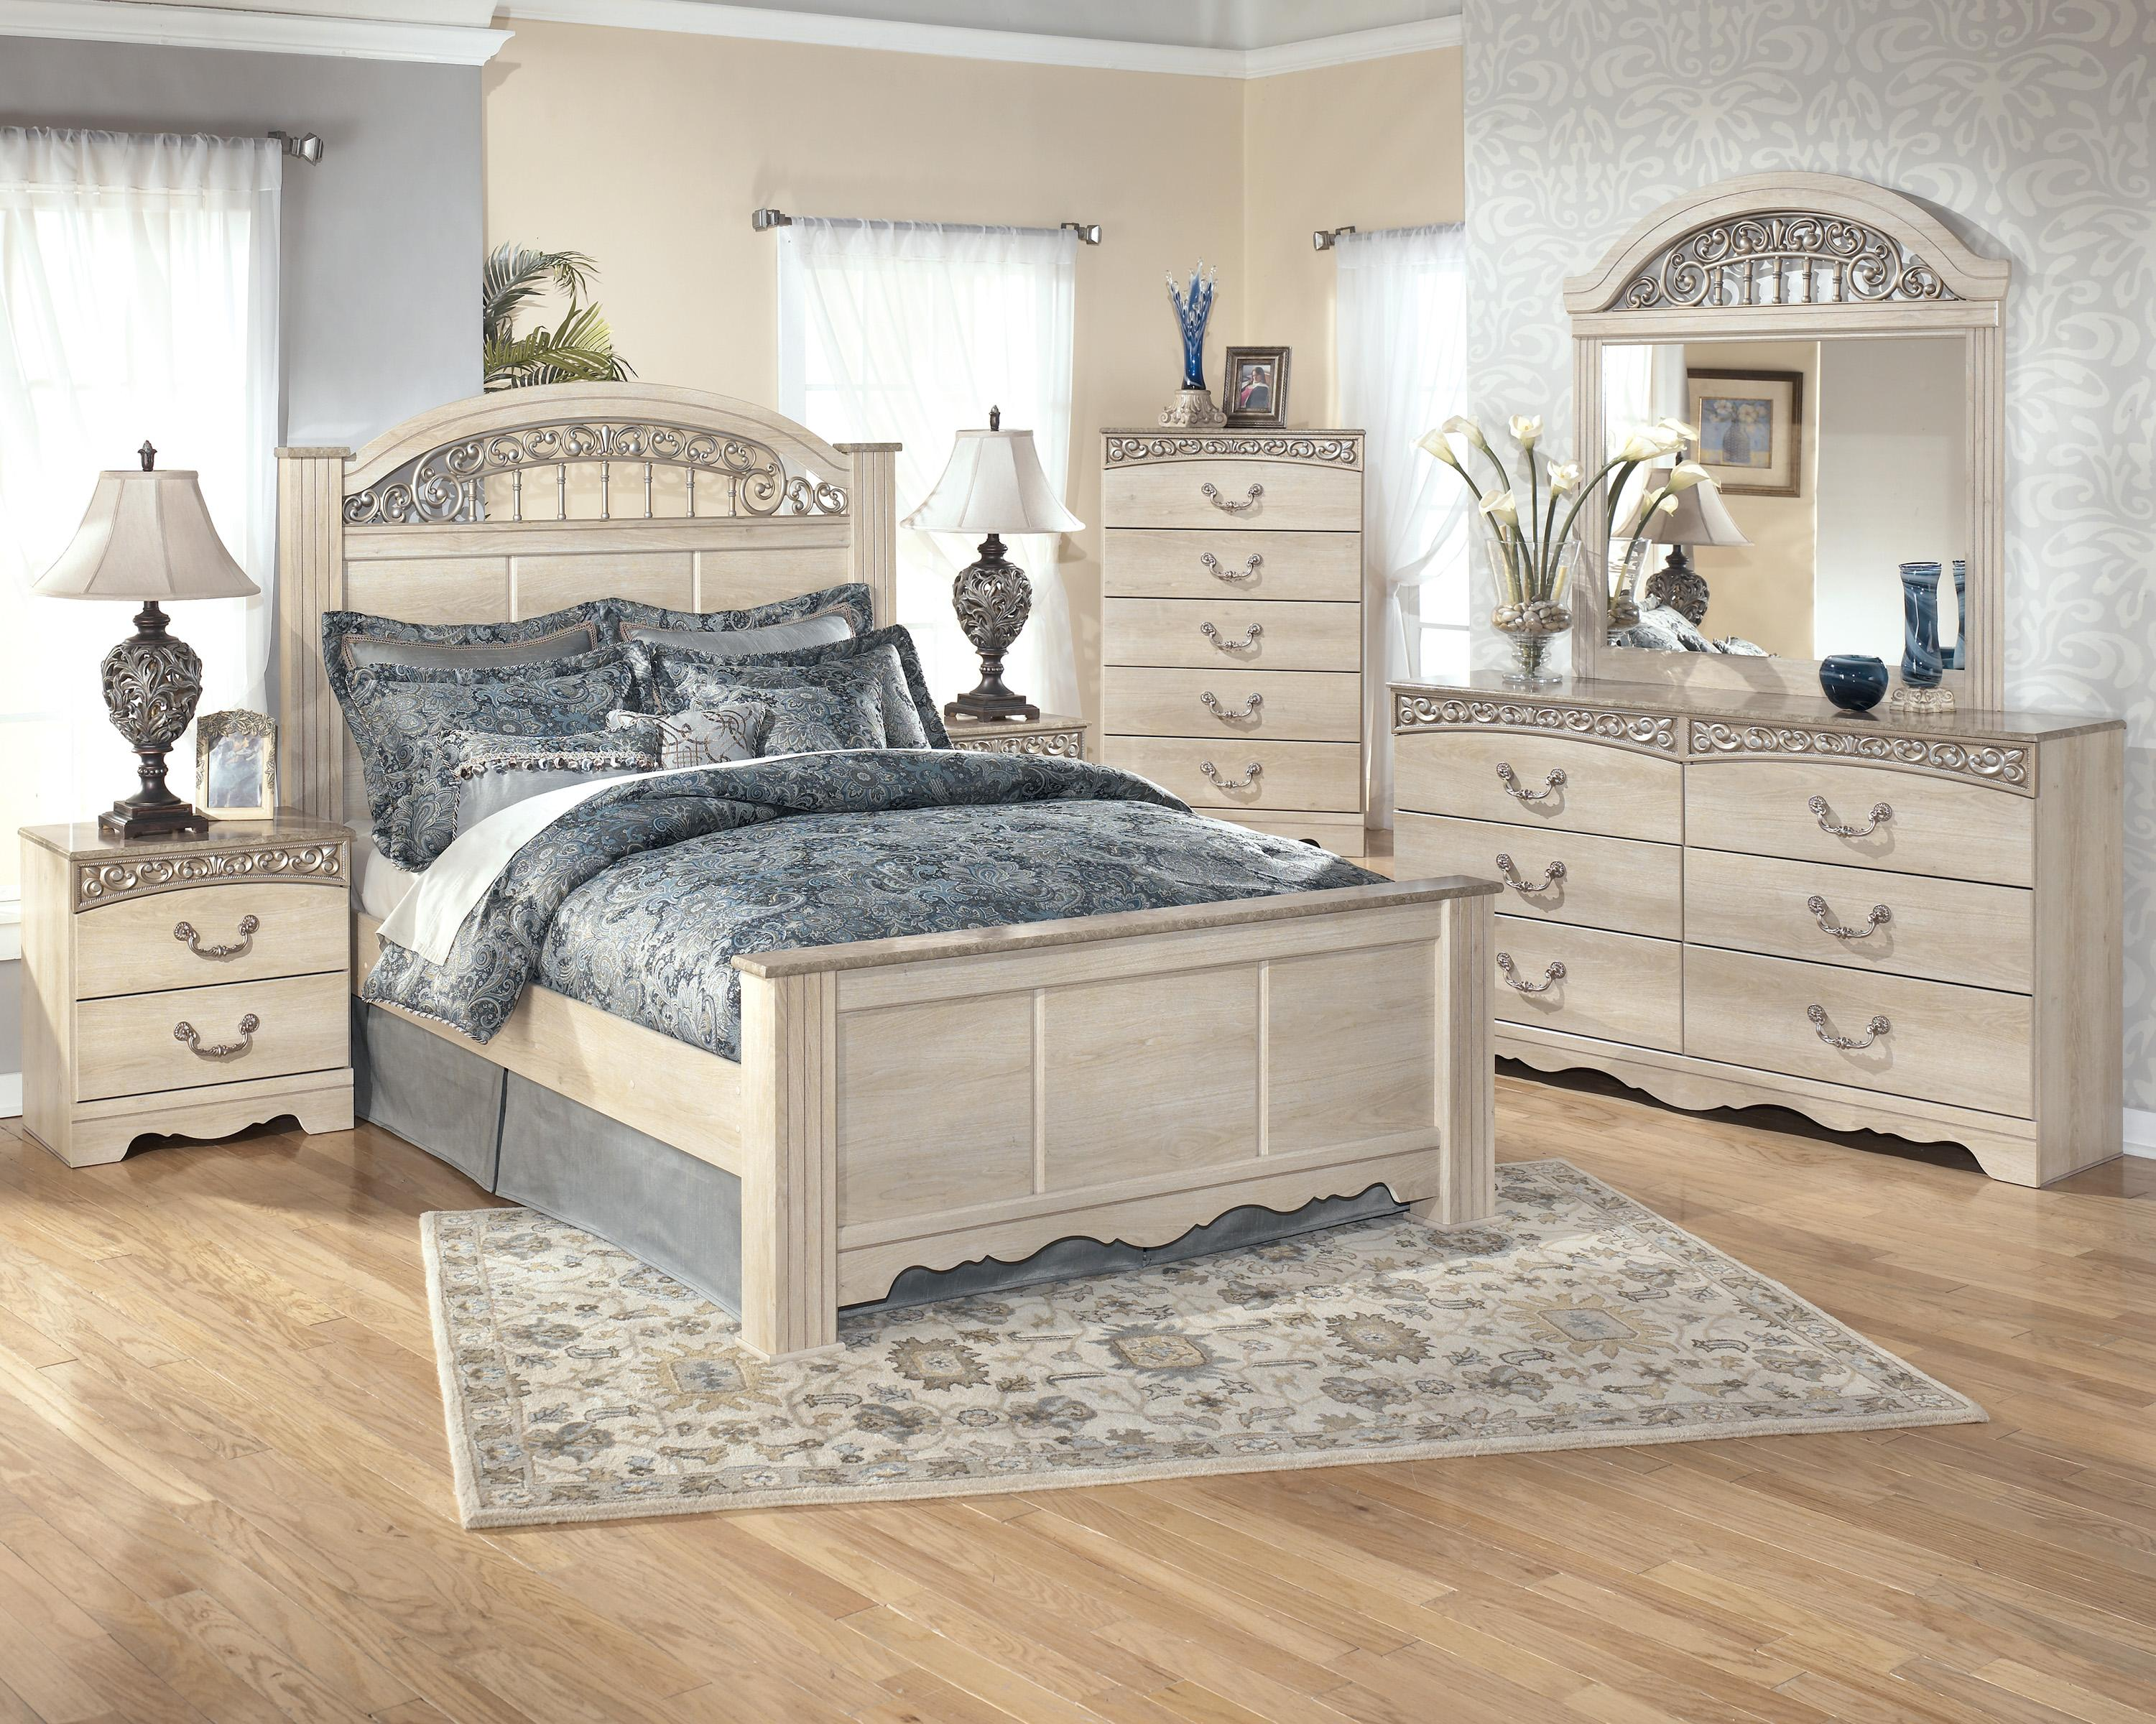 Signature Design by Ashley Catalina King Bedroom Group - Item Number: B196 K Bedroom Group 1